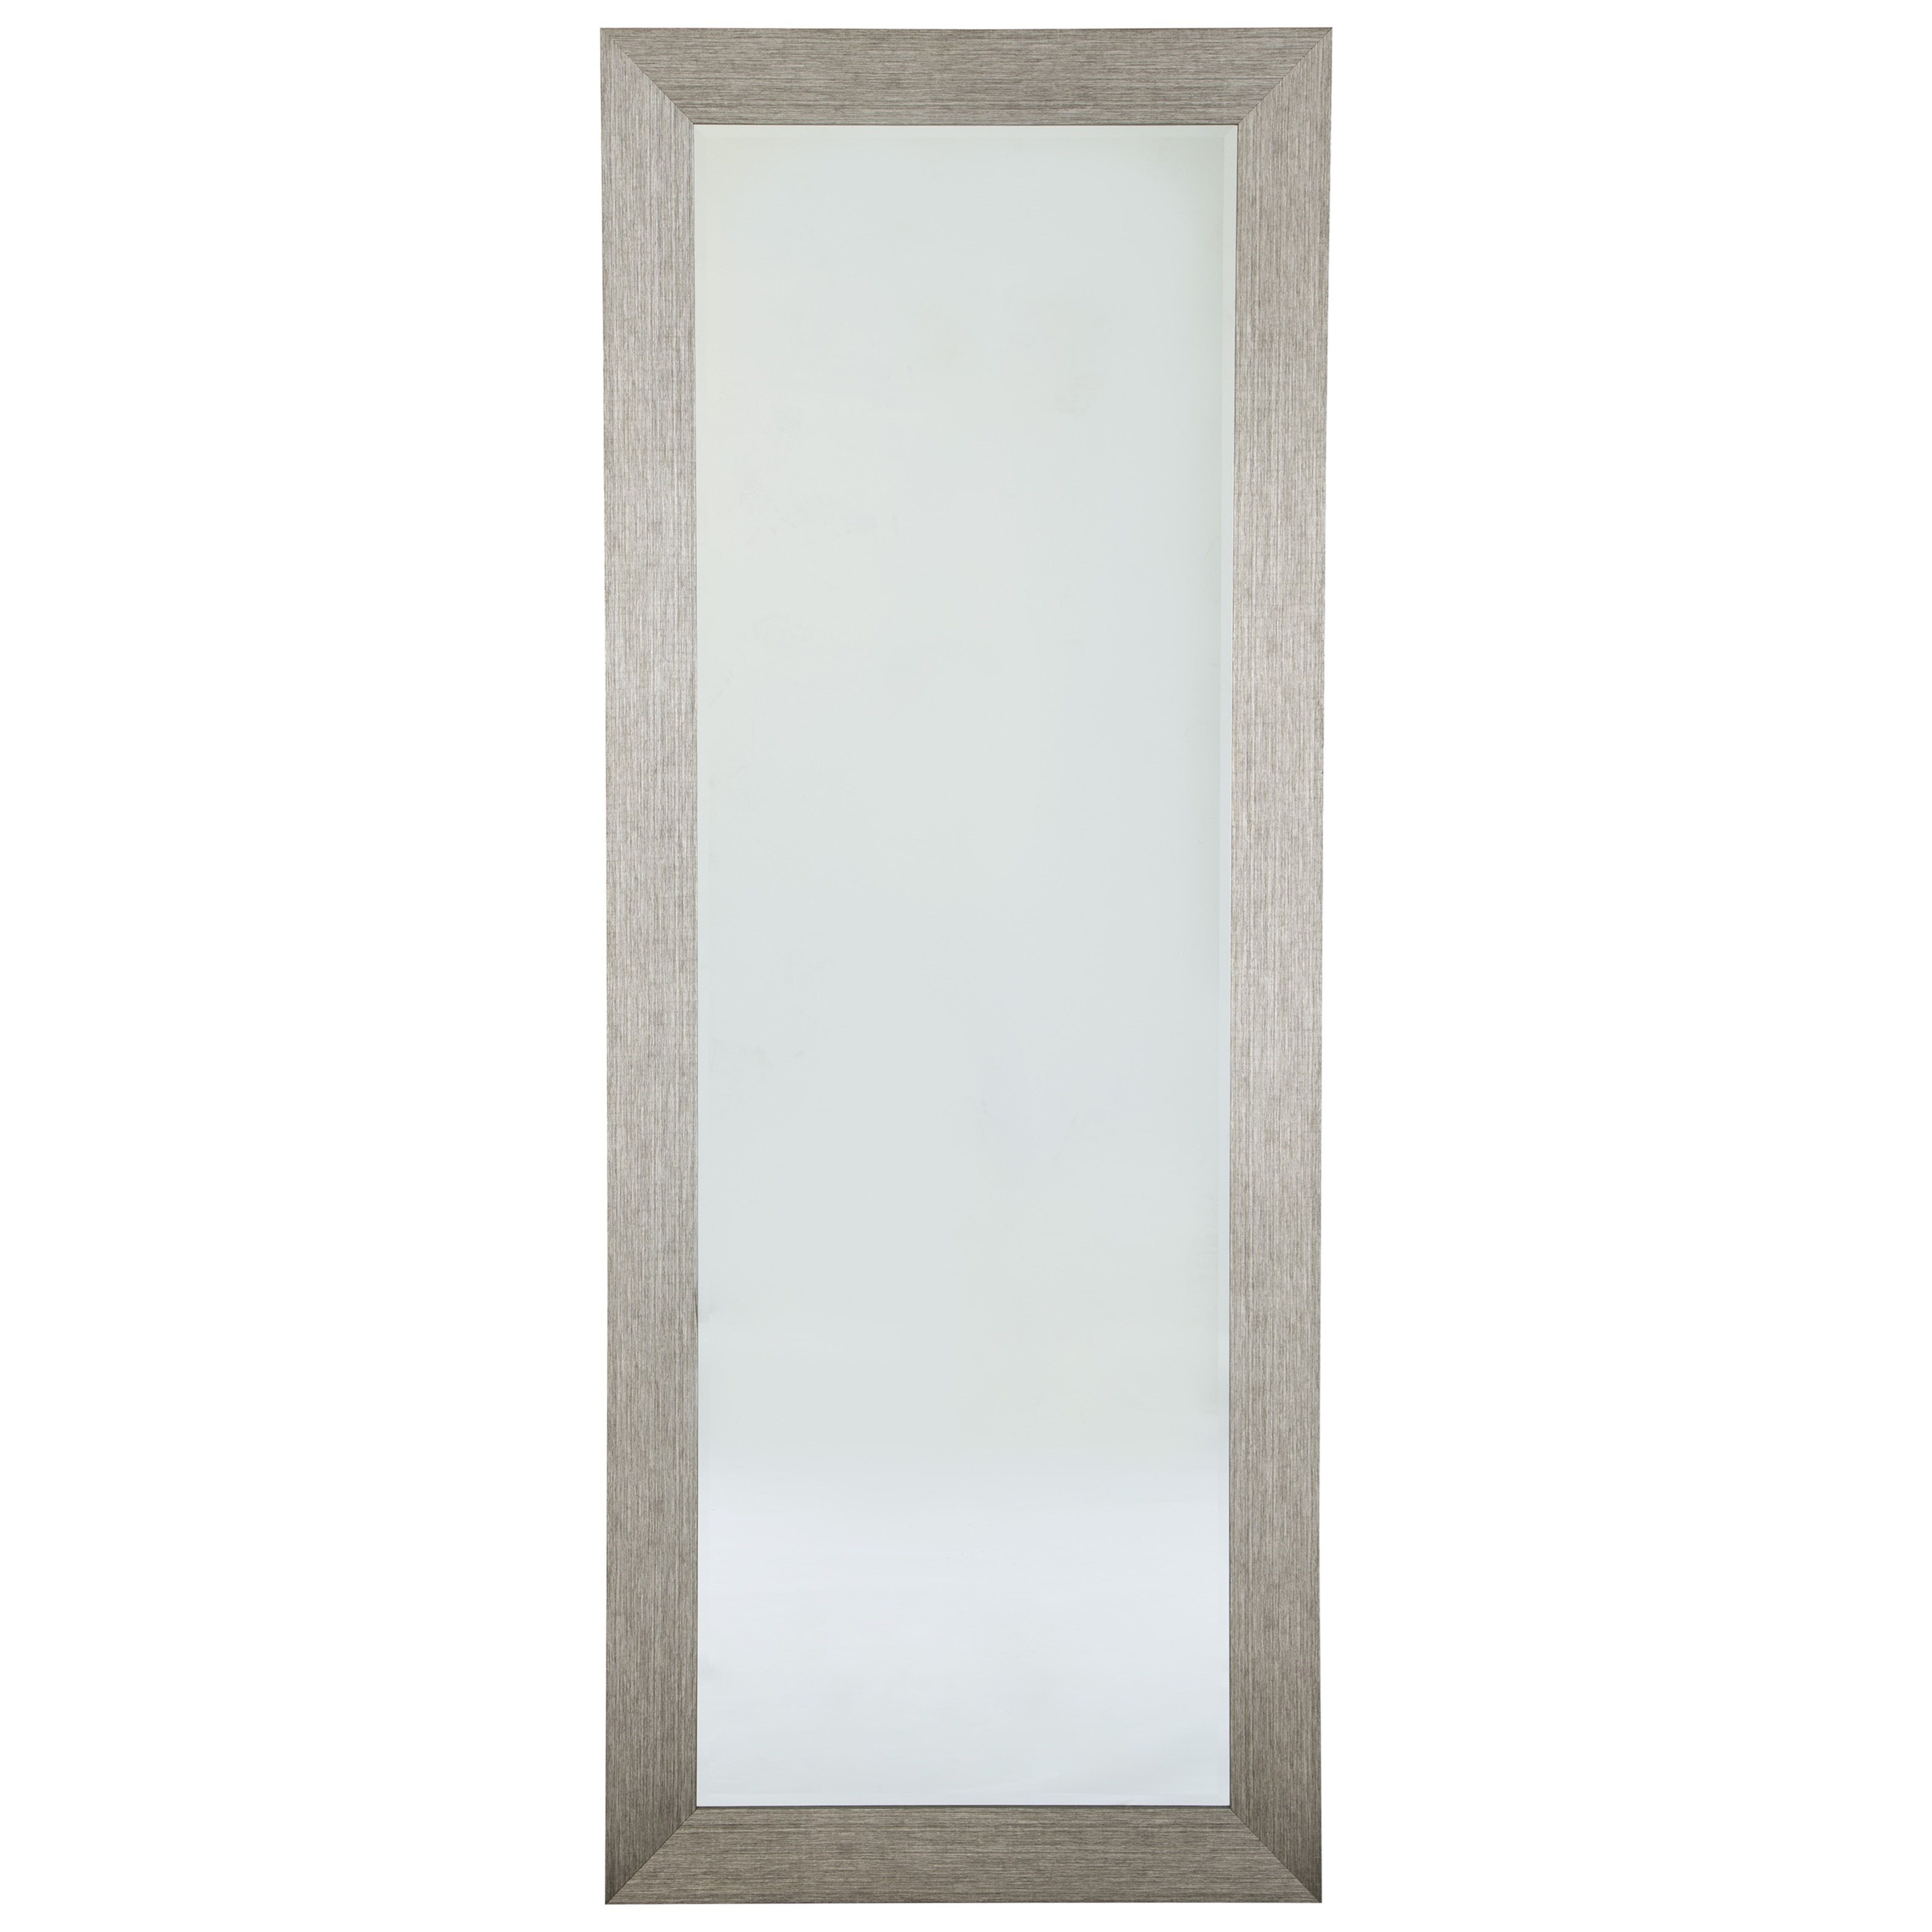 Signature design by ashley accent mirrors a8010081 duka for Accent mirrors